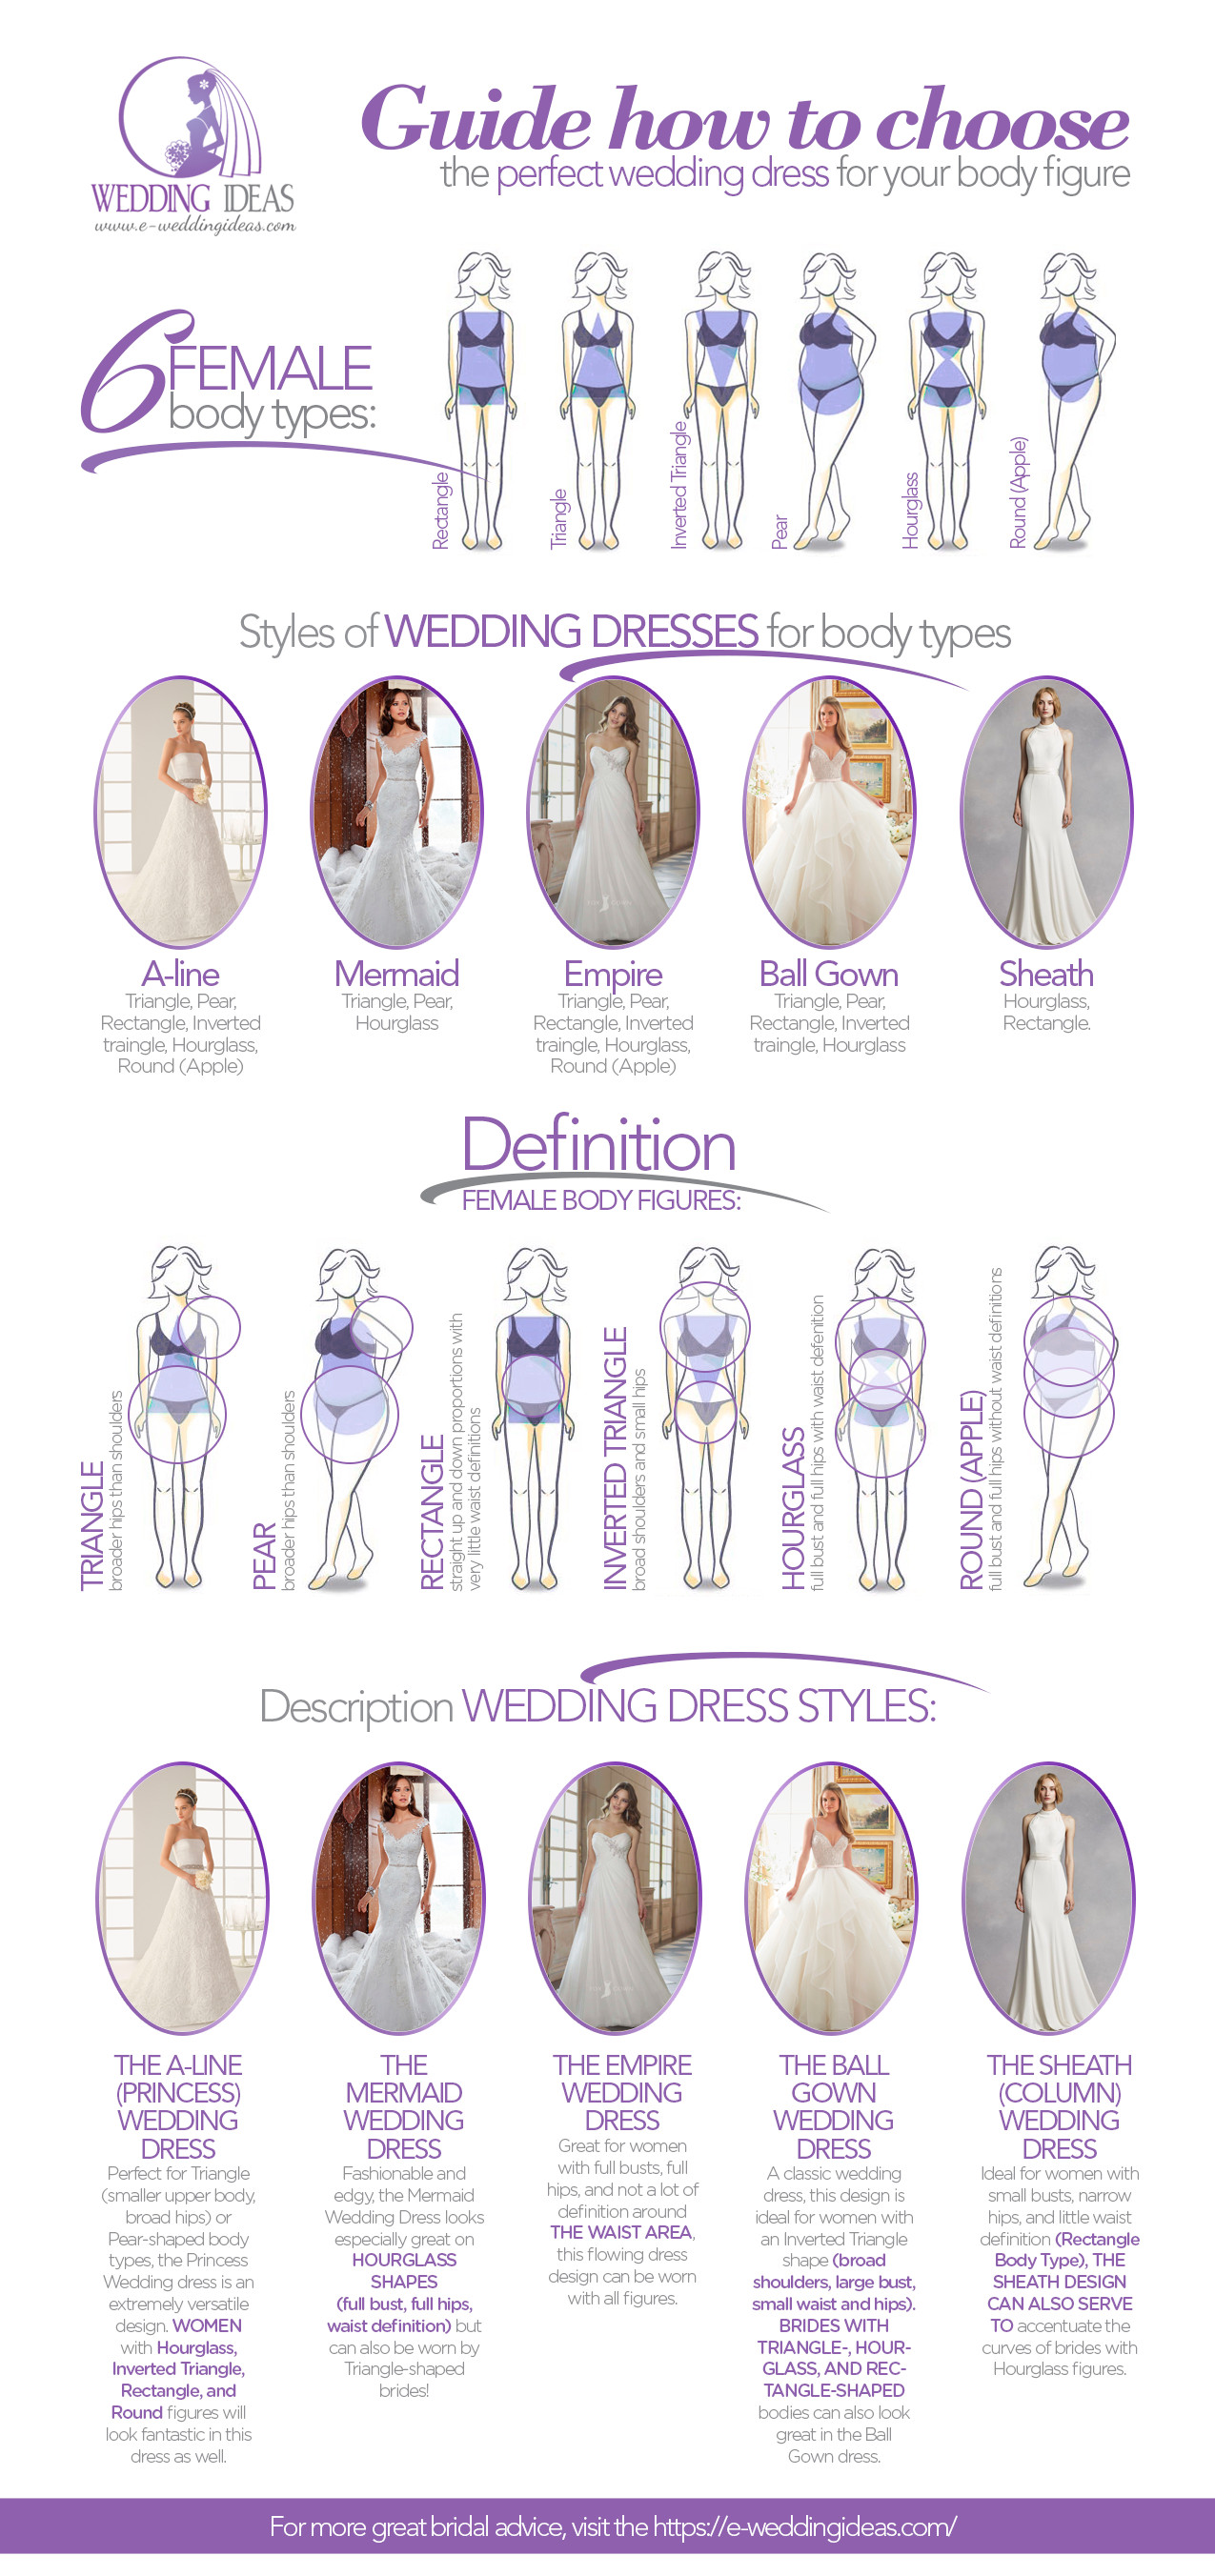 Guide How to Choose the Perfect Wedding Dress for Your Body Figure